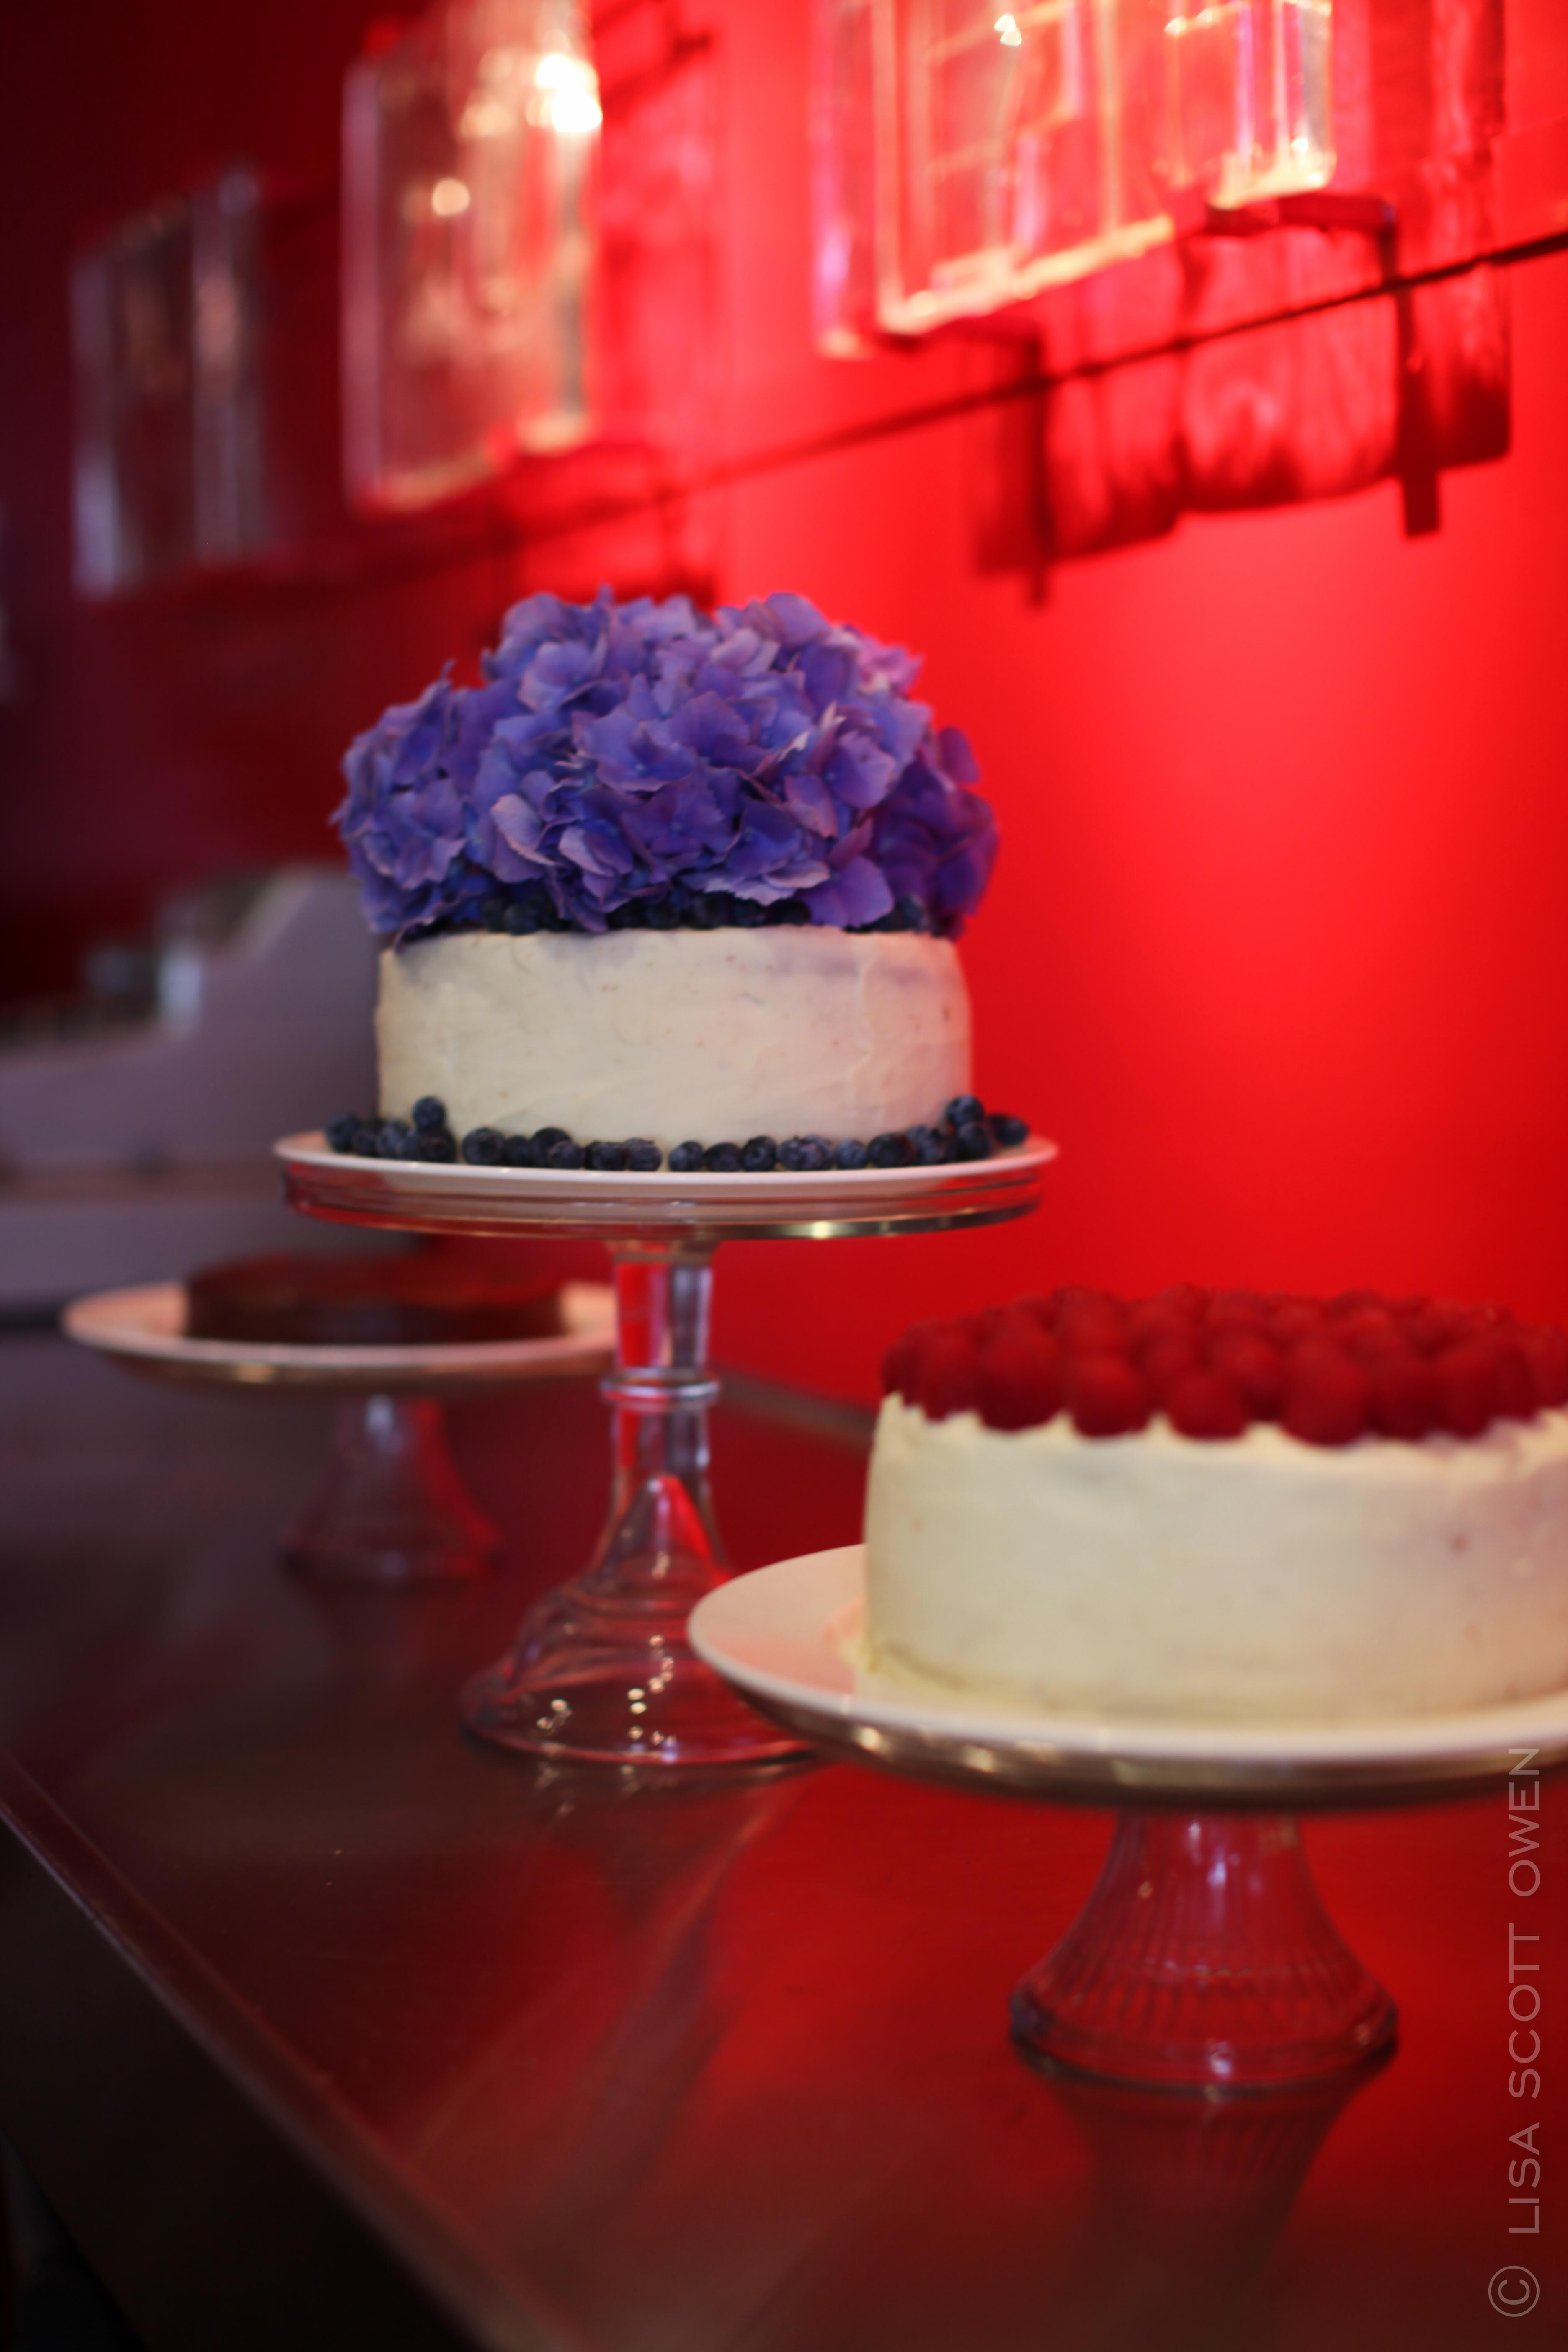 the mark wedding cakes c 2013 lisa scott owen-1-3